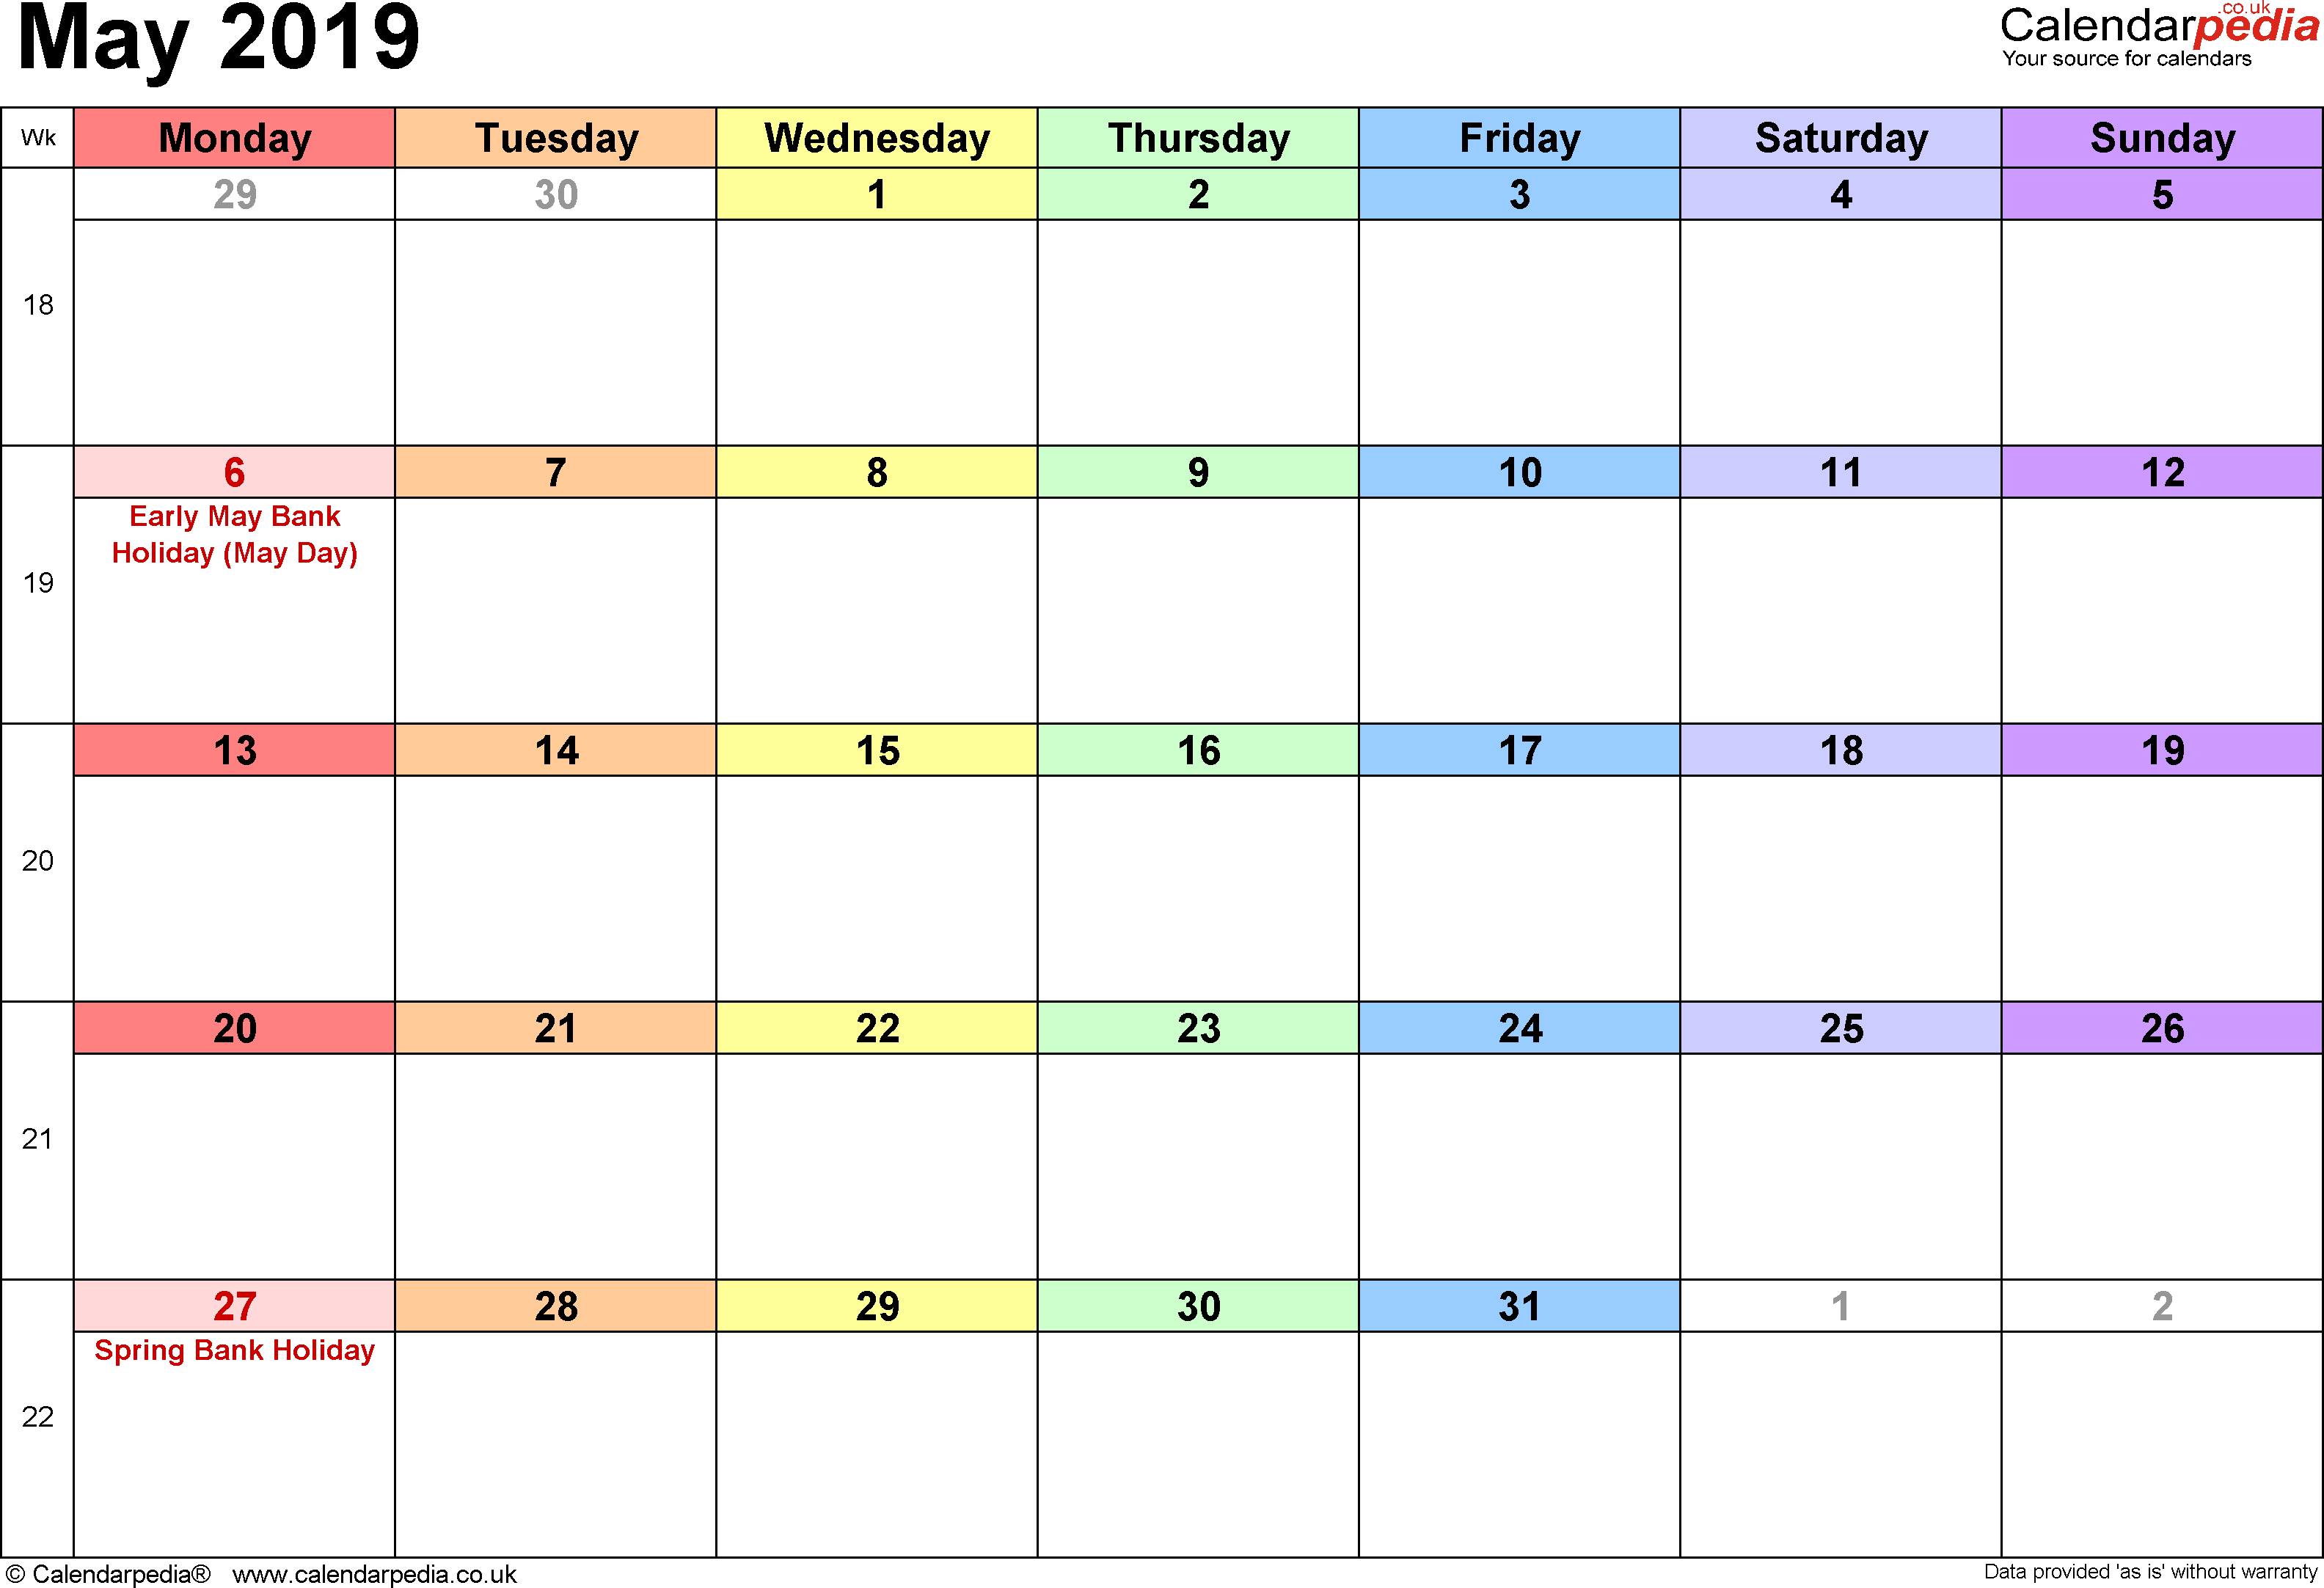 Calendar May 2019, landscape orientation, 1 page, with UK bank holidays and week numbers